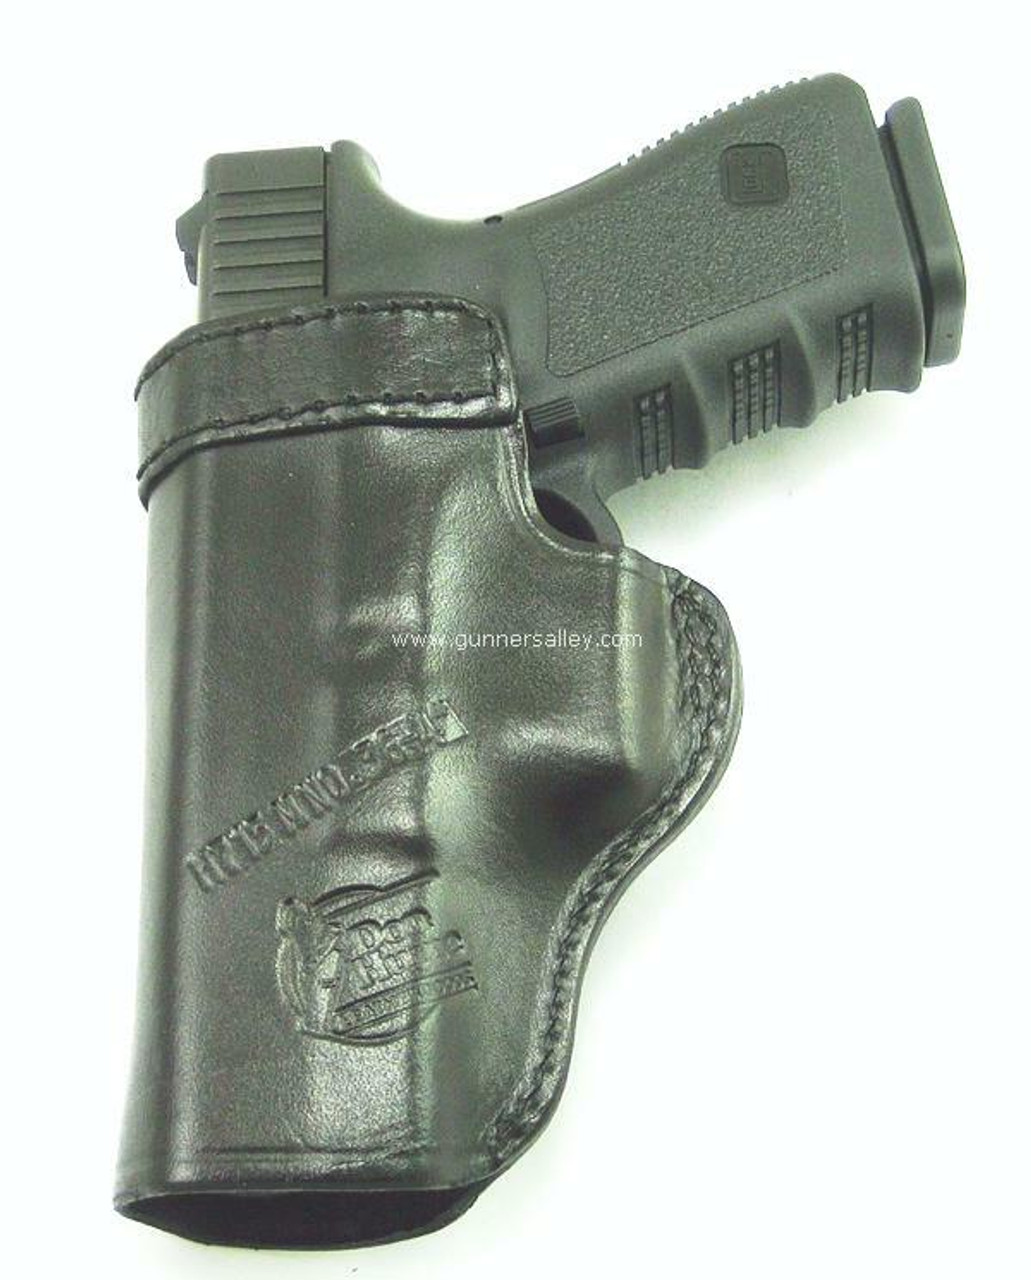 Black - Rear View - Shown with a Glock 19 for Demonstration Purposes